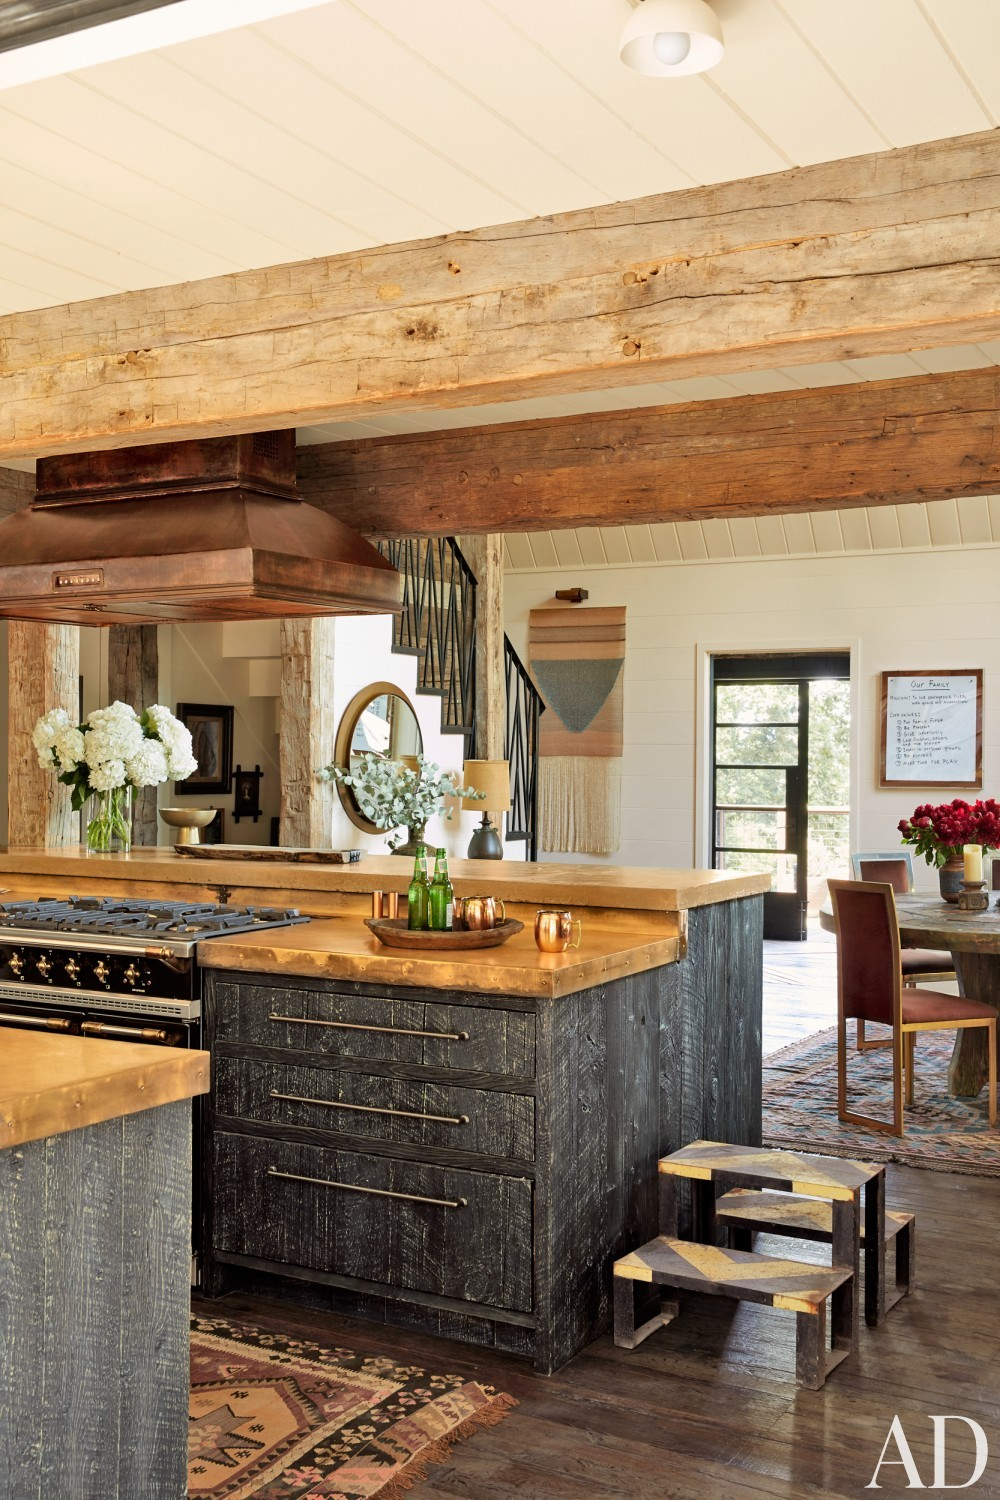 Kitchen by Hammer and Spear and Hammer and Spear in Los Angeles, CA